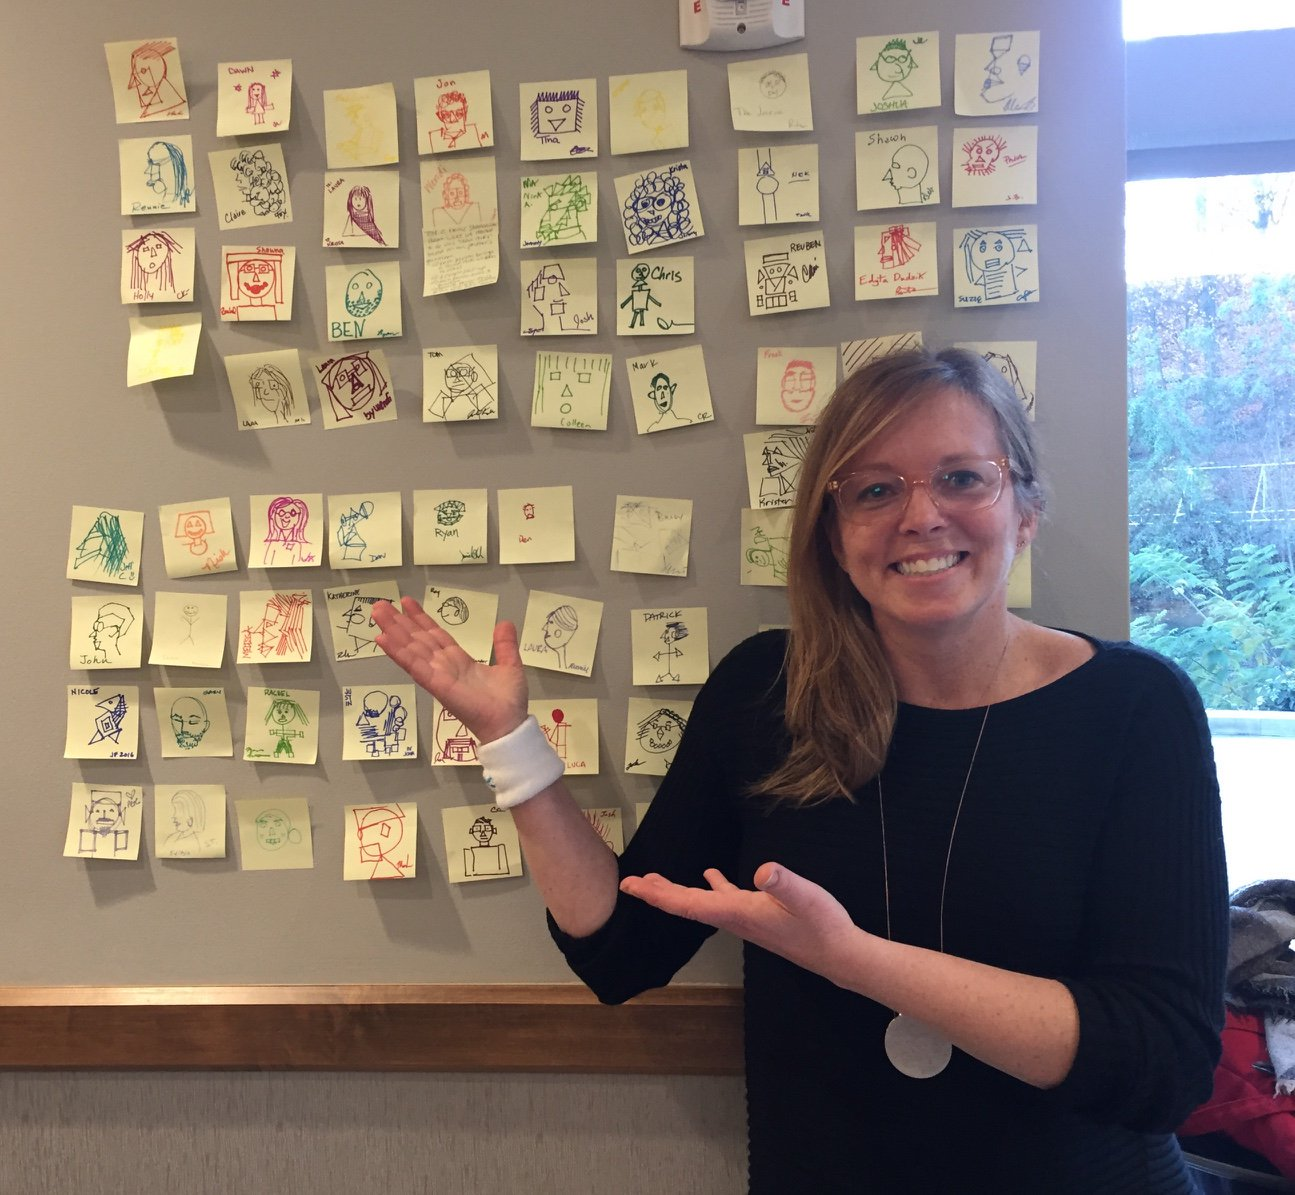 Shannon with drawings made by participants in a workshop she led at World UX (User Experience)Day.